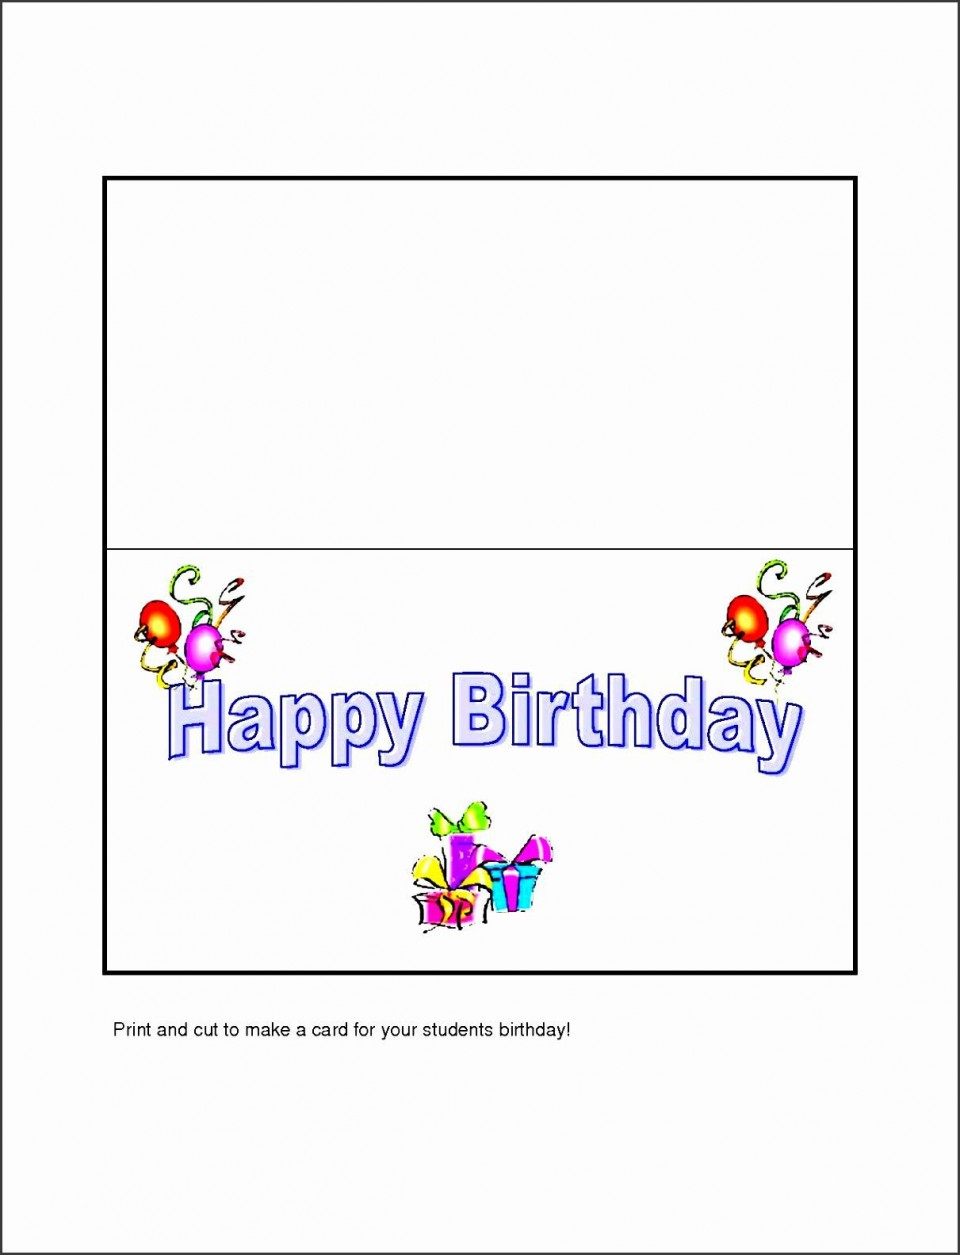 009 Top Microsoft Word Card Template Picture  Birthday Download Busines Free960